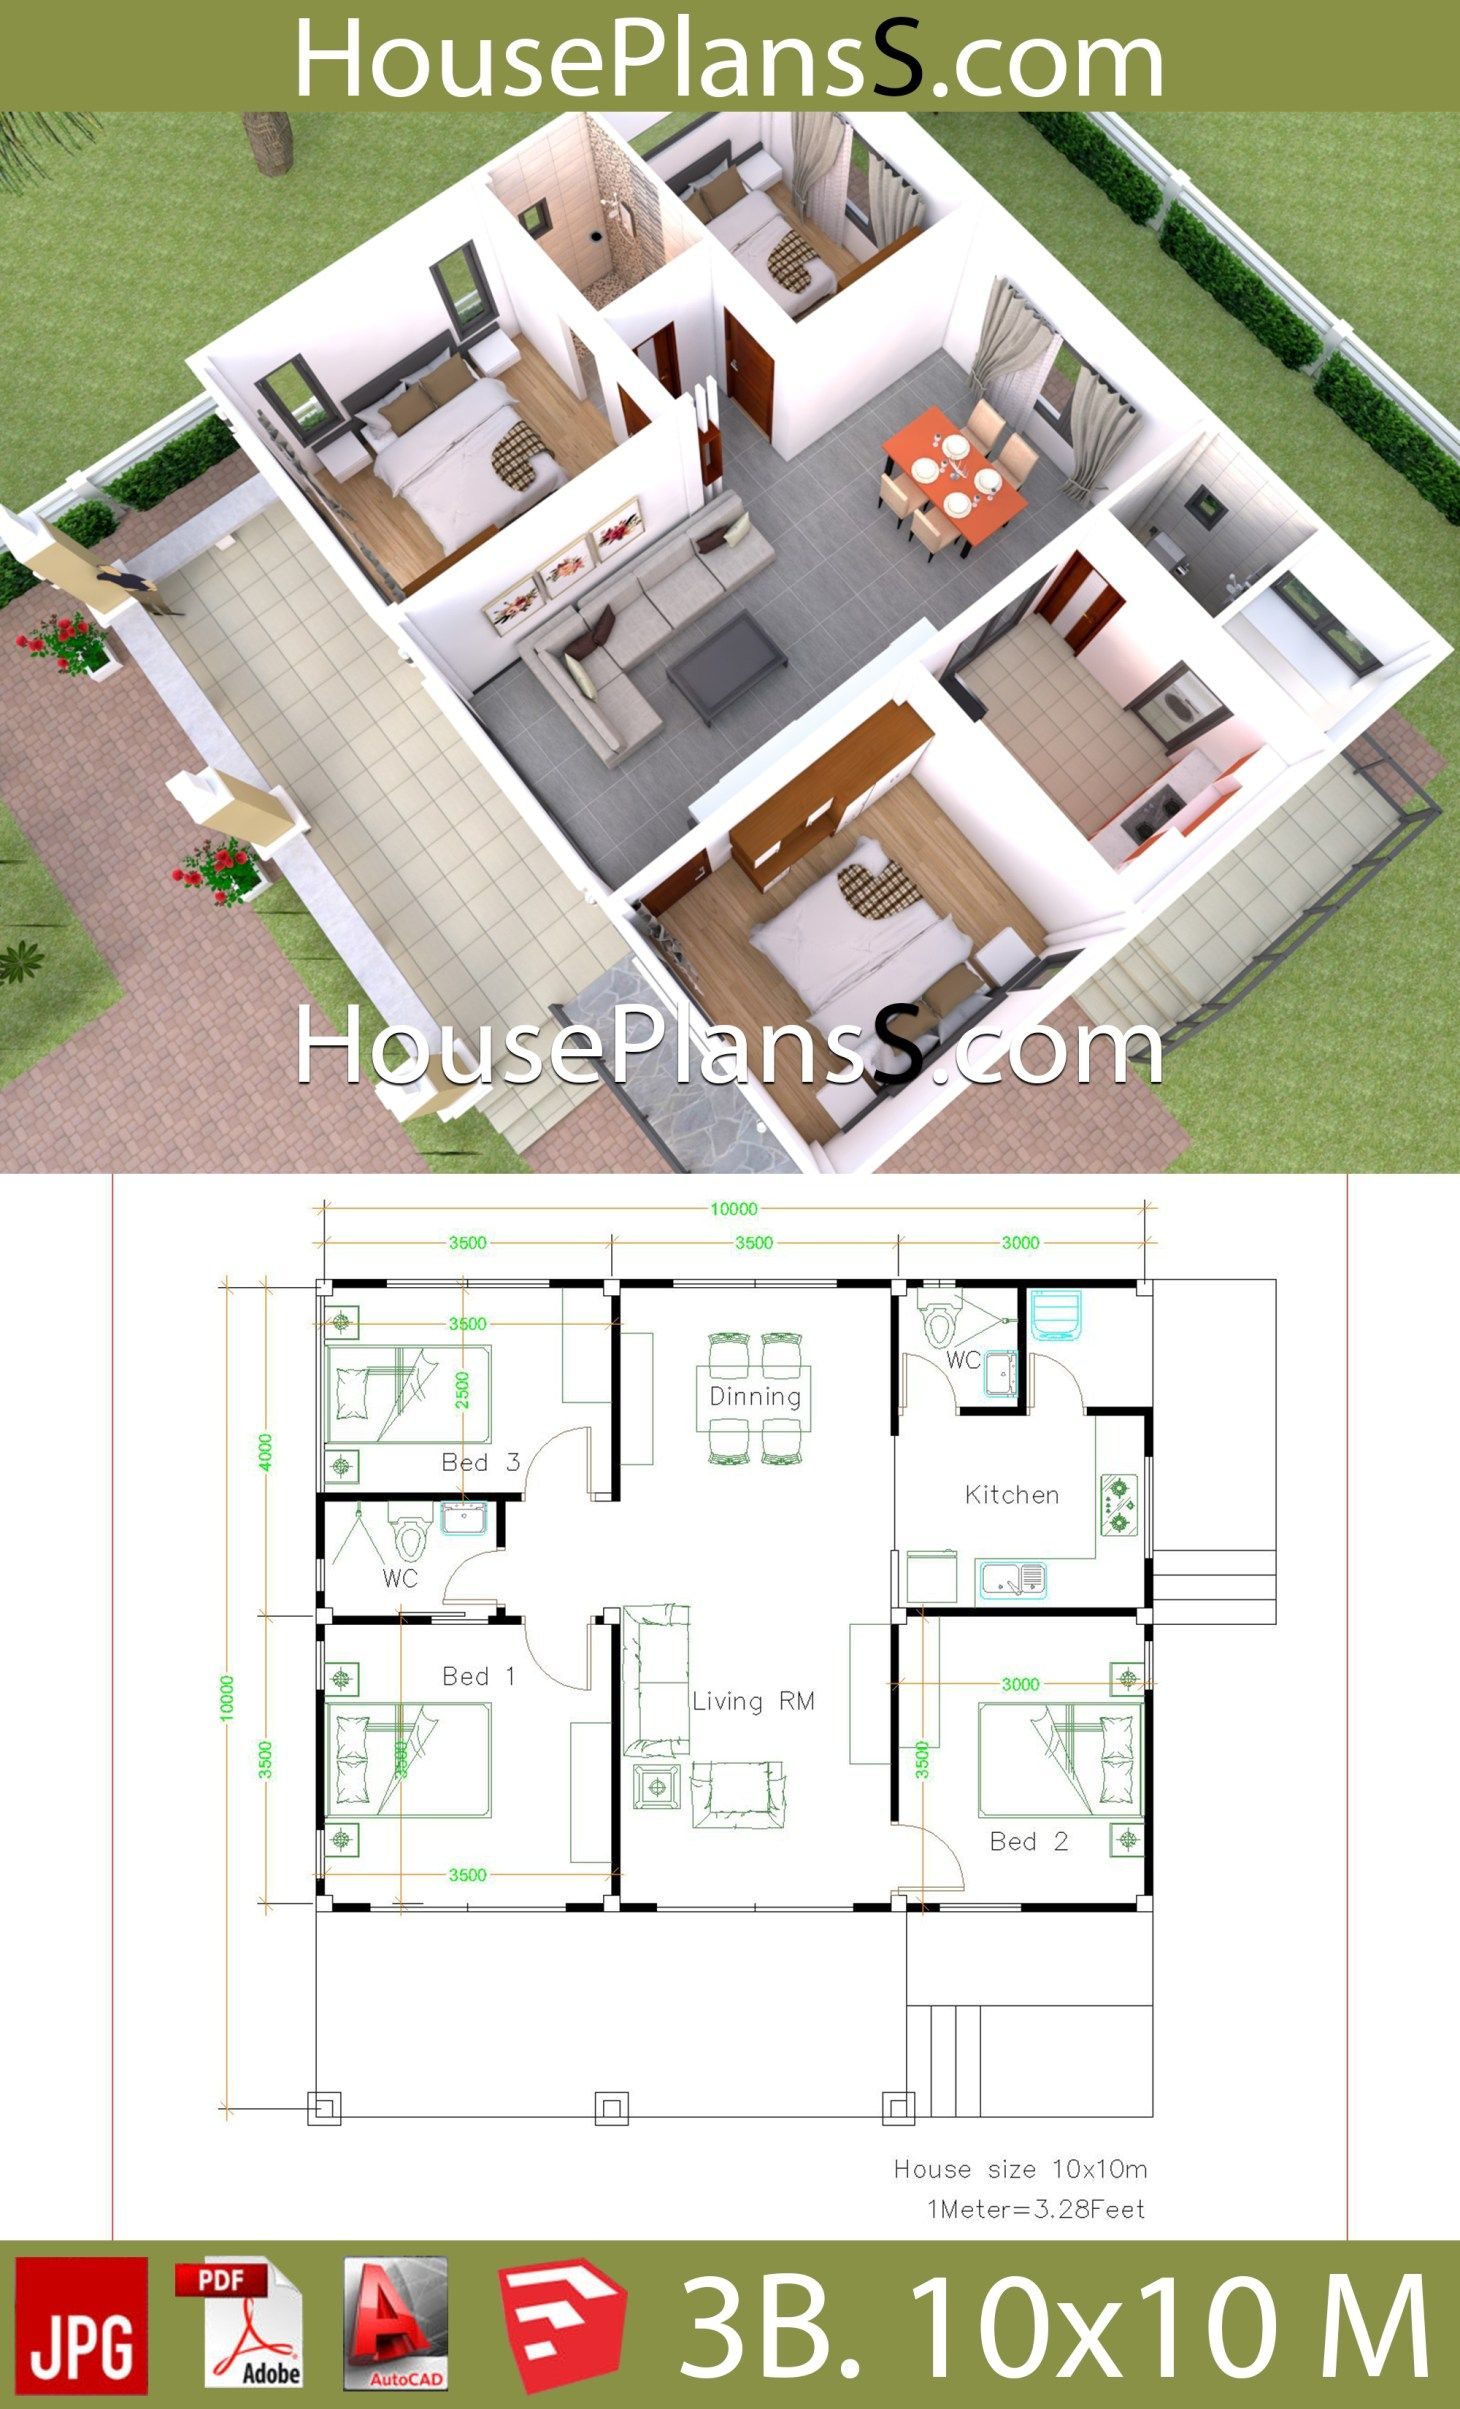 10x10 Bedroom: House Design Plans 10x10 With 3 Bedrooms Full Interior In